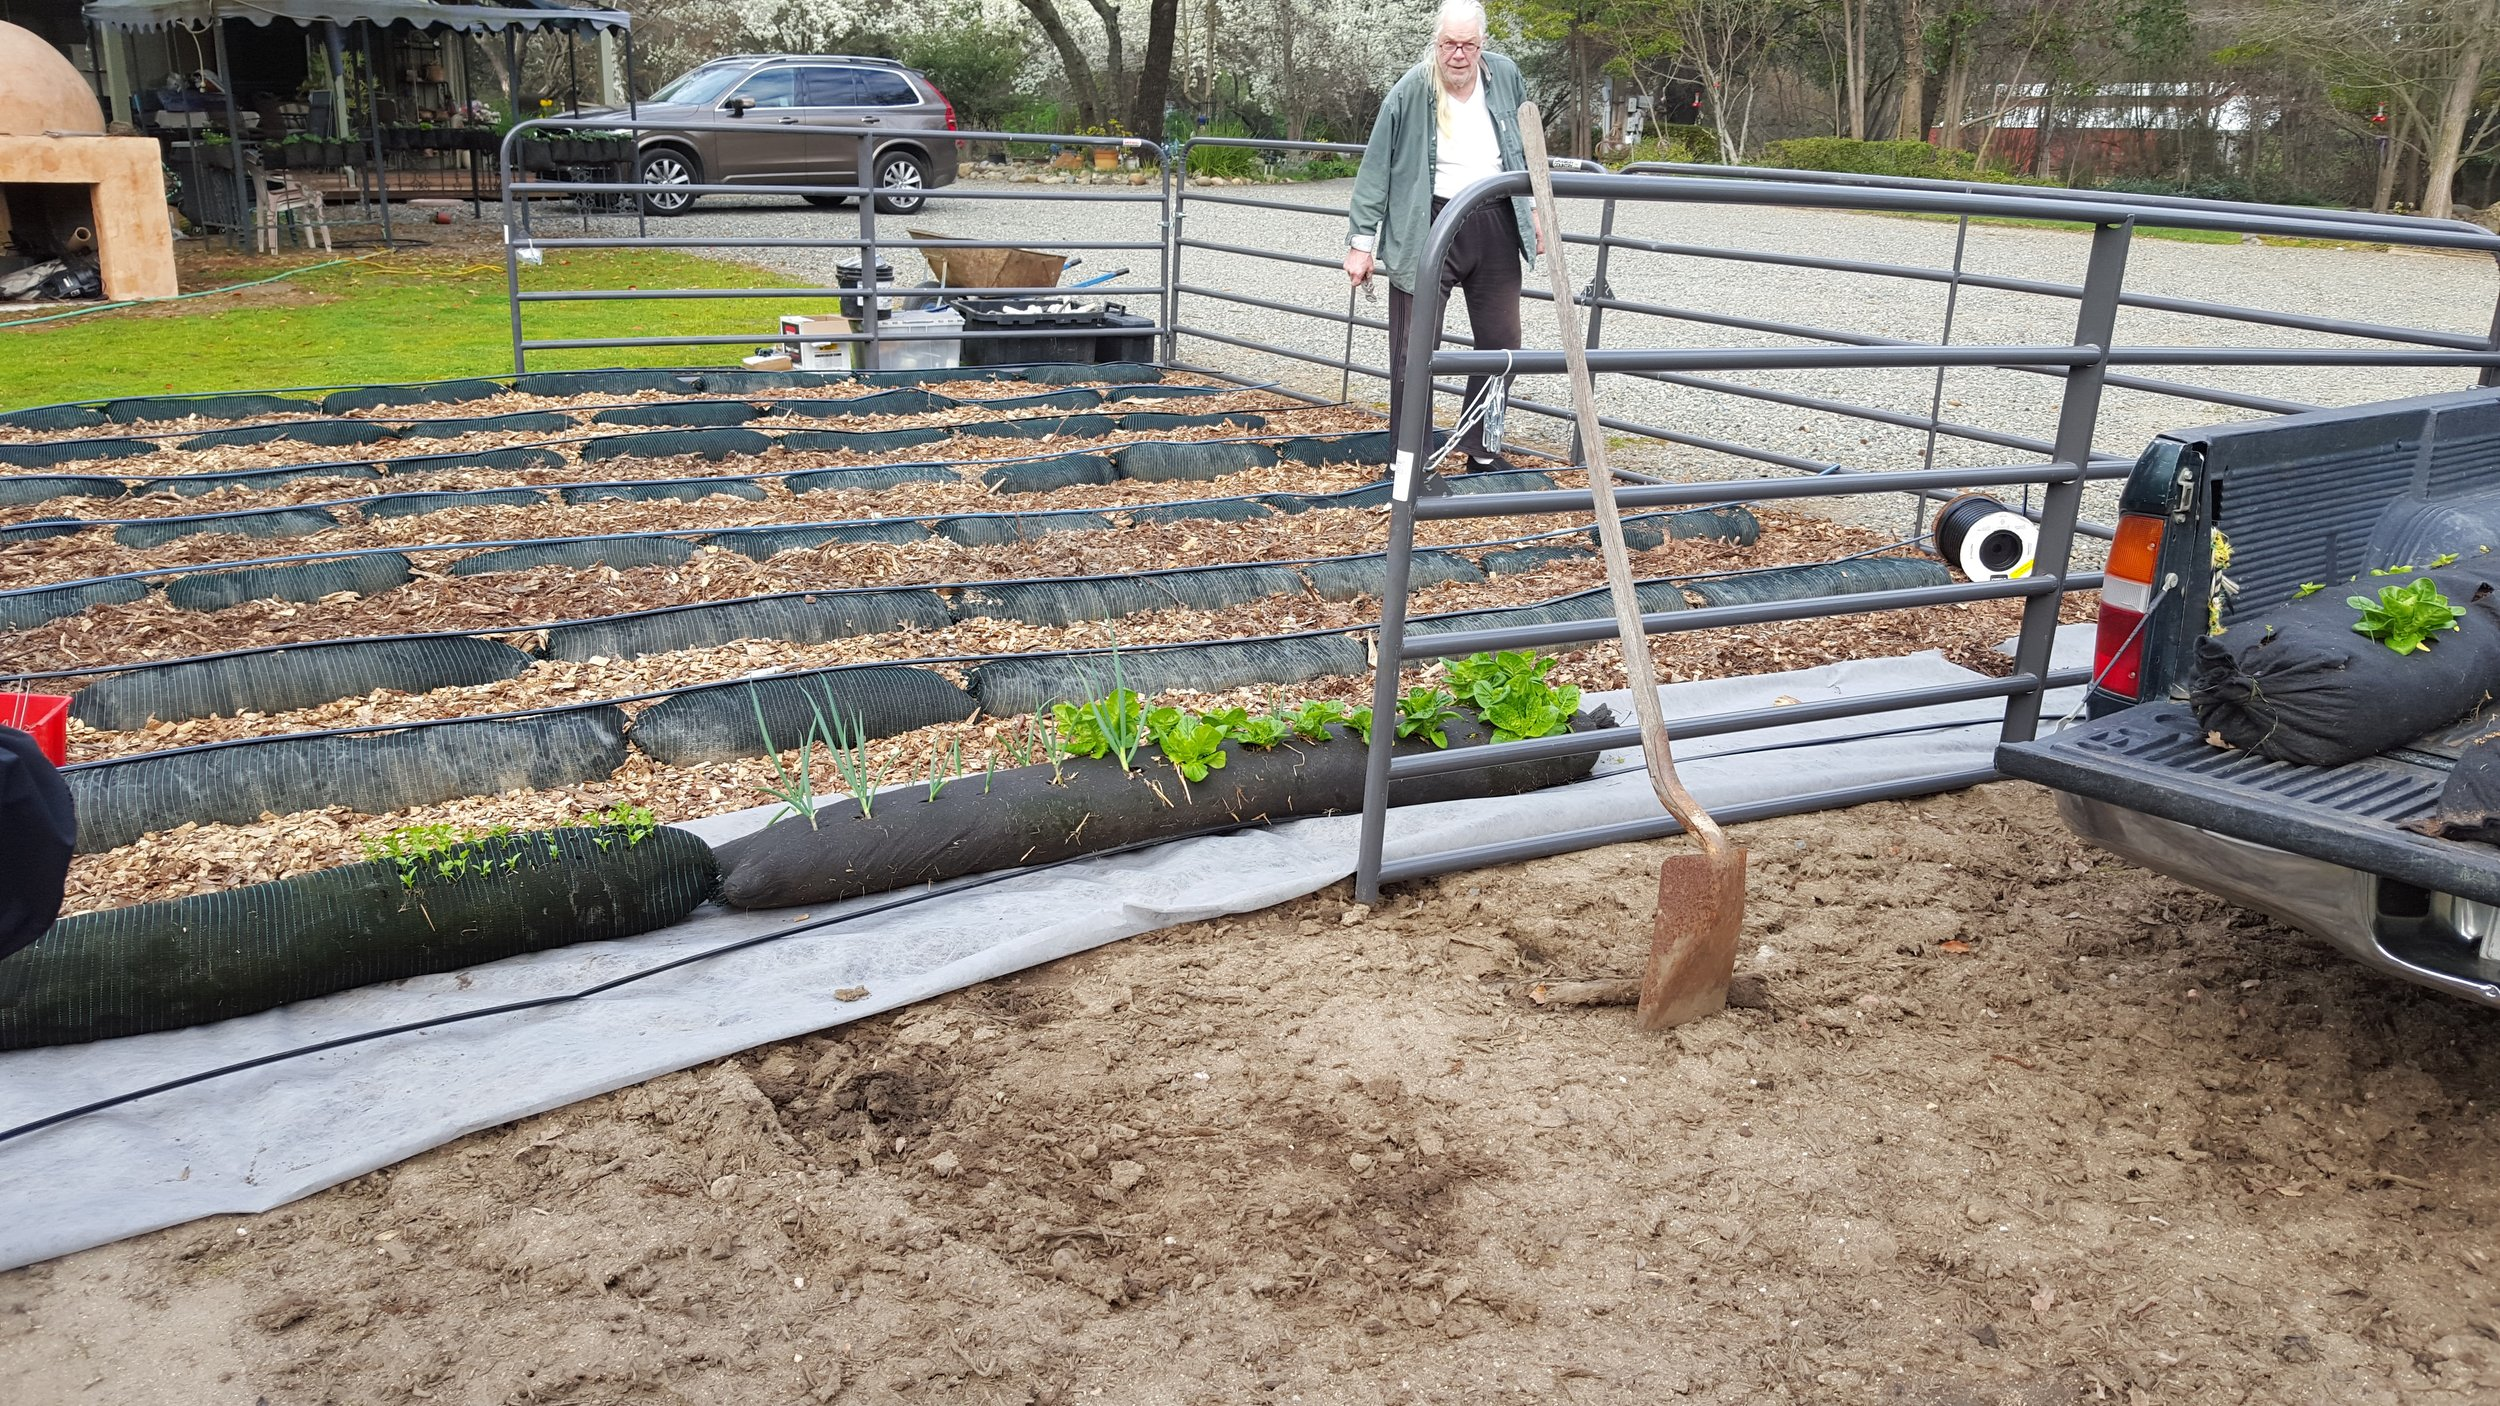 Planting several vegetables with the azolla compost.